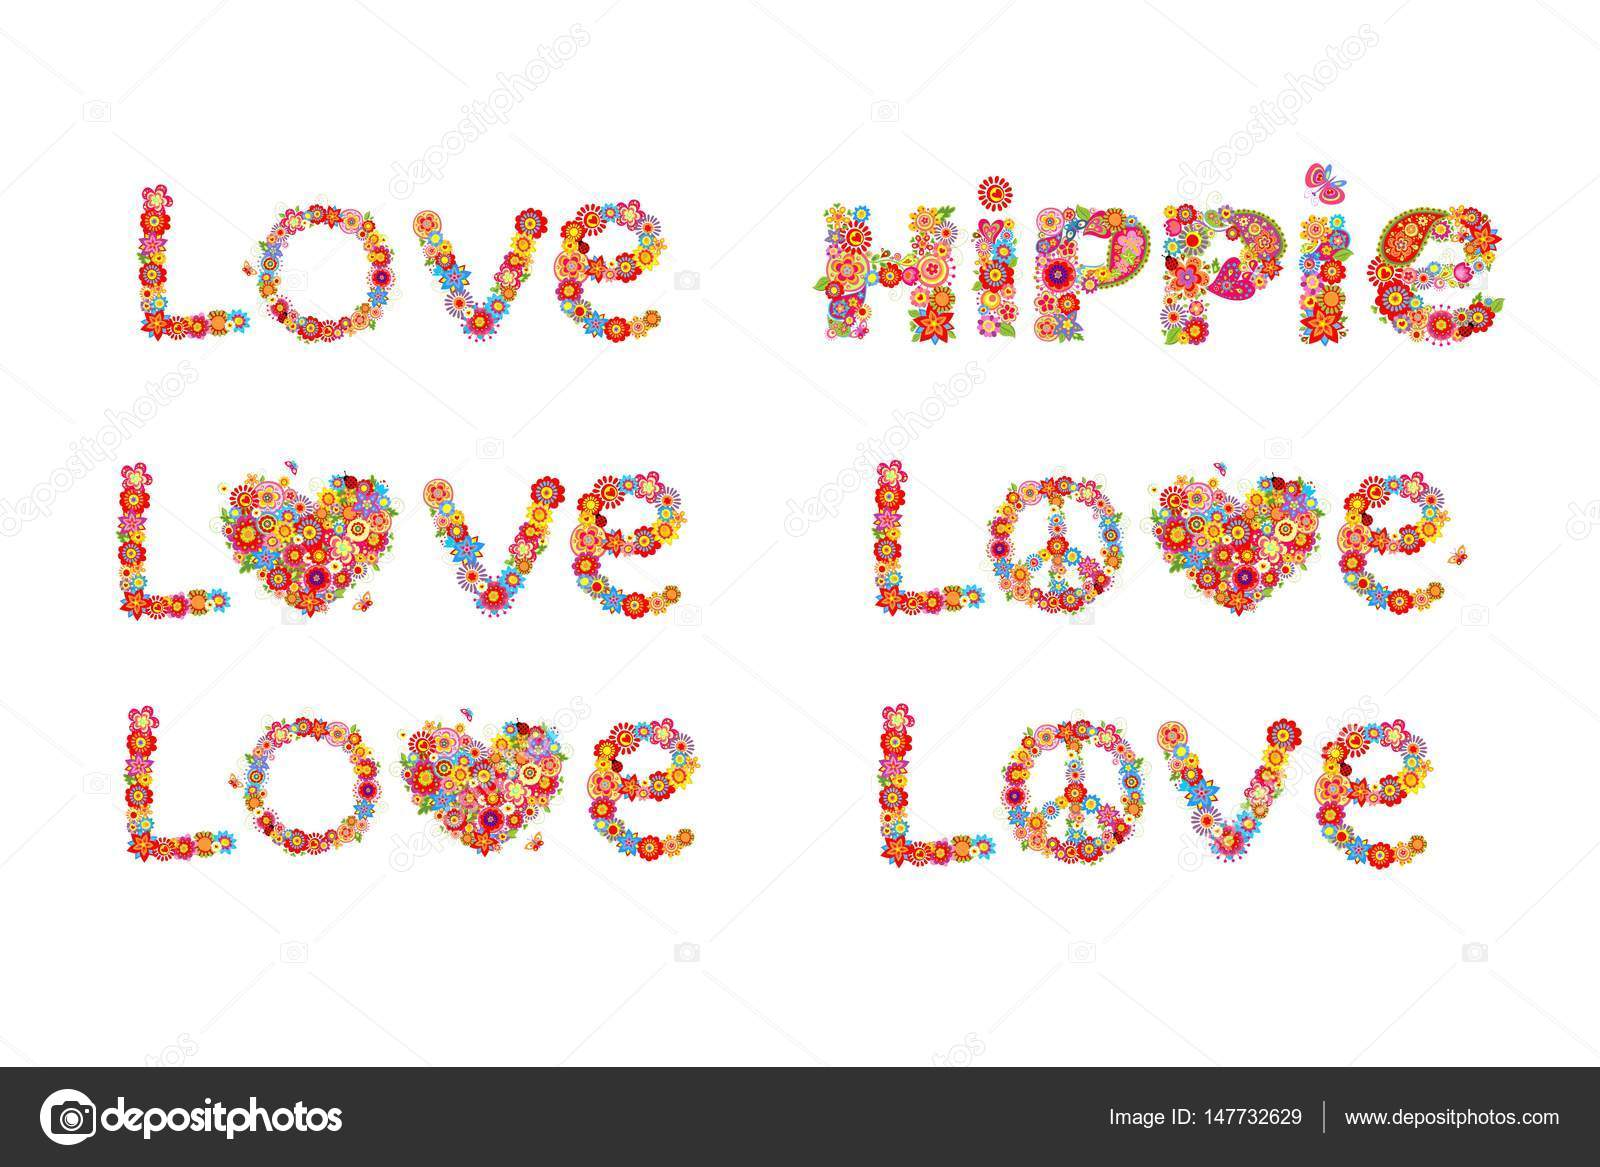 Flowers print with peace flower symbol love and hippie word flowers print with peace flower symbol love and hippie word stock vector biocorpaavc Choice Image